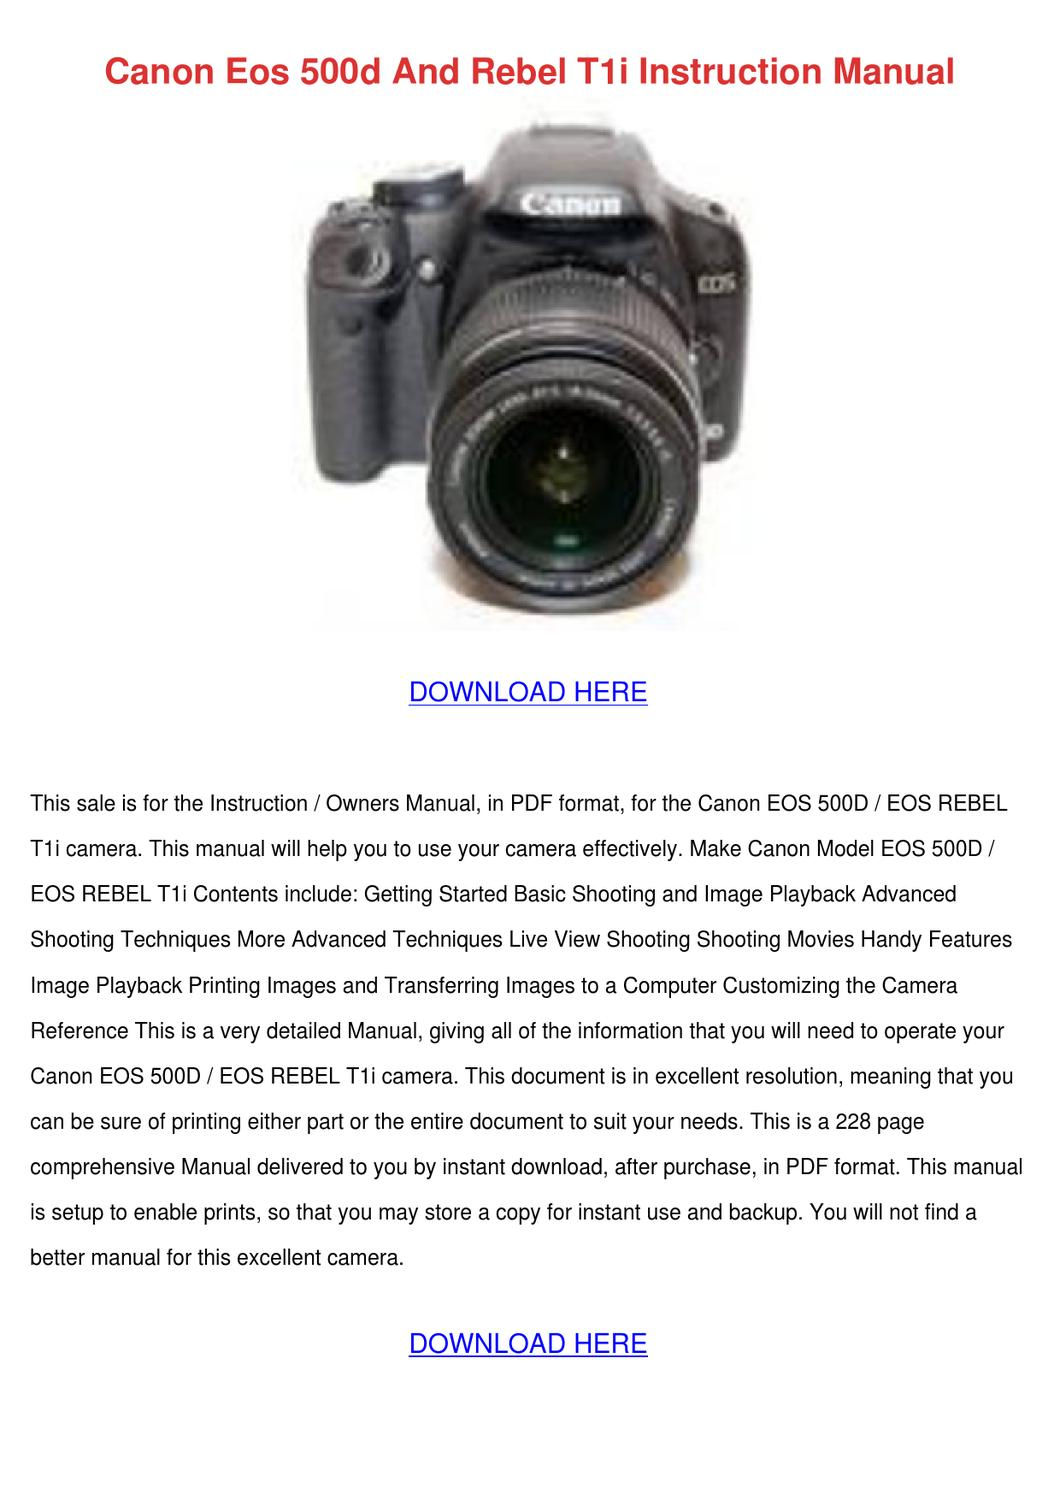 Canon Eos 500d And Rebel T1i Instruction Manu by Tennie Simone - issuu